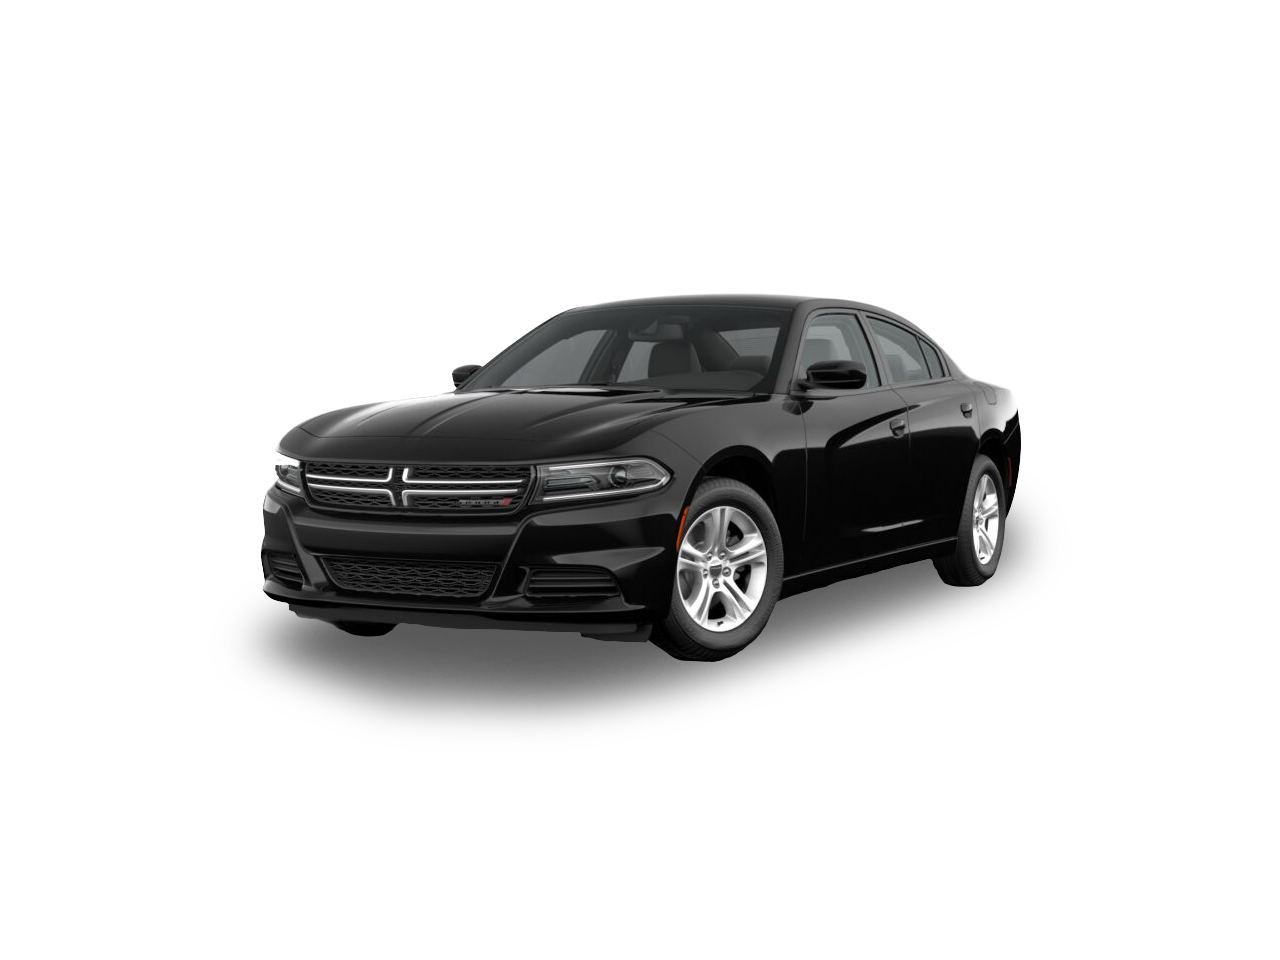 Test Drive A 2017 Dodge Charger at Nashville Chrysler Dodge Jeep RAM in Antioch